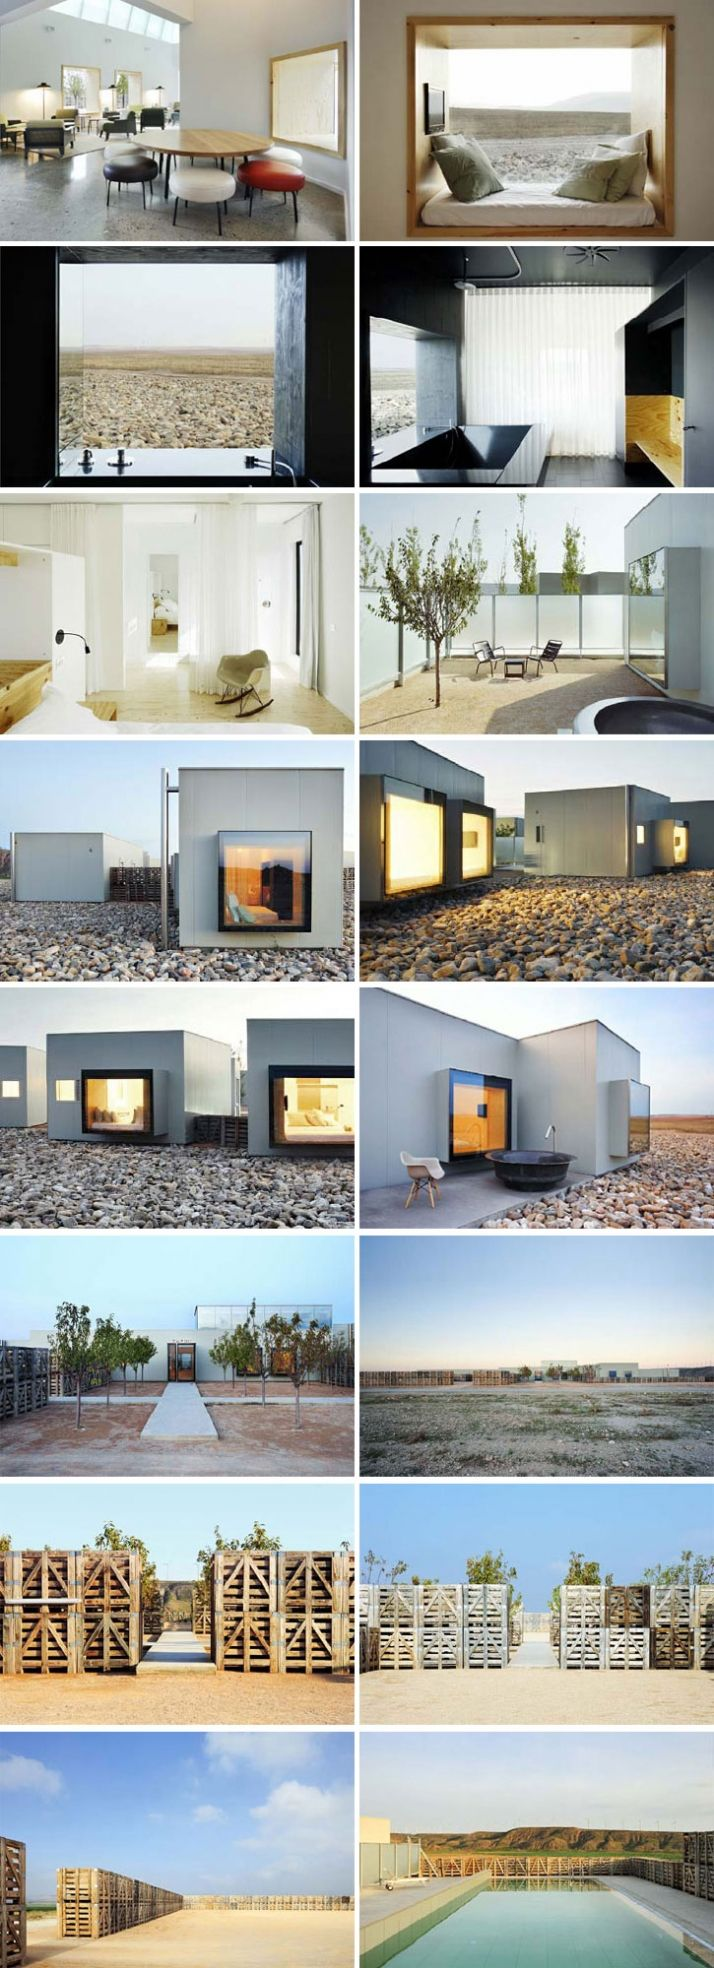 Hotel Aire de Bardenas in Spain  Beautiful hotel designed by Monica Rivera and Emiliano Lopez. Via Skaist Taylor